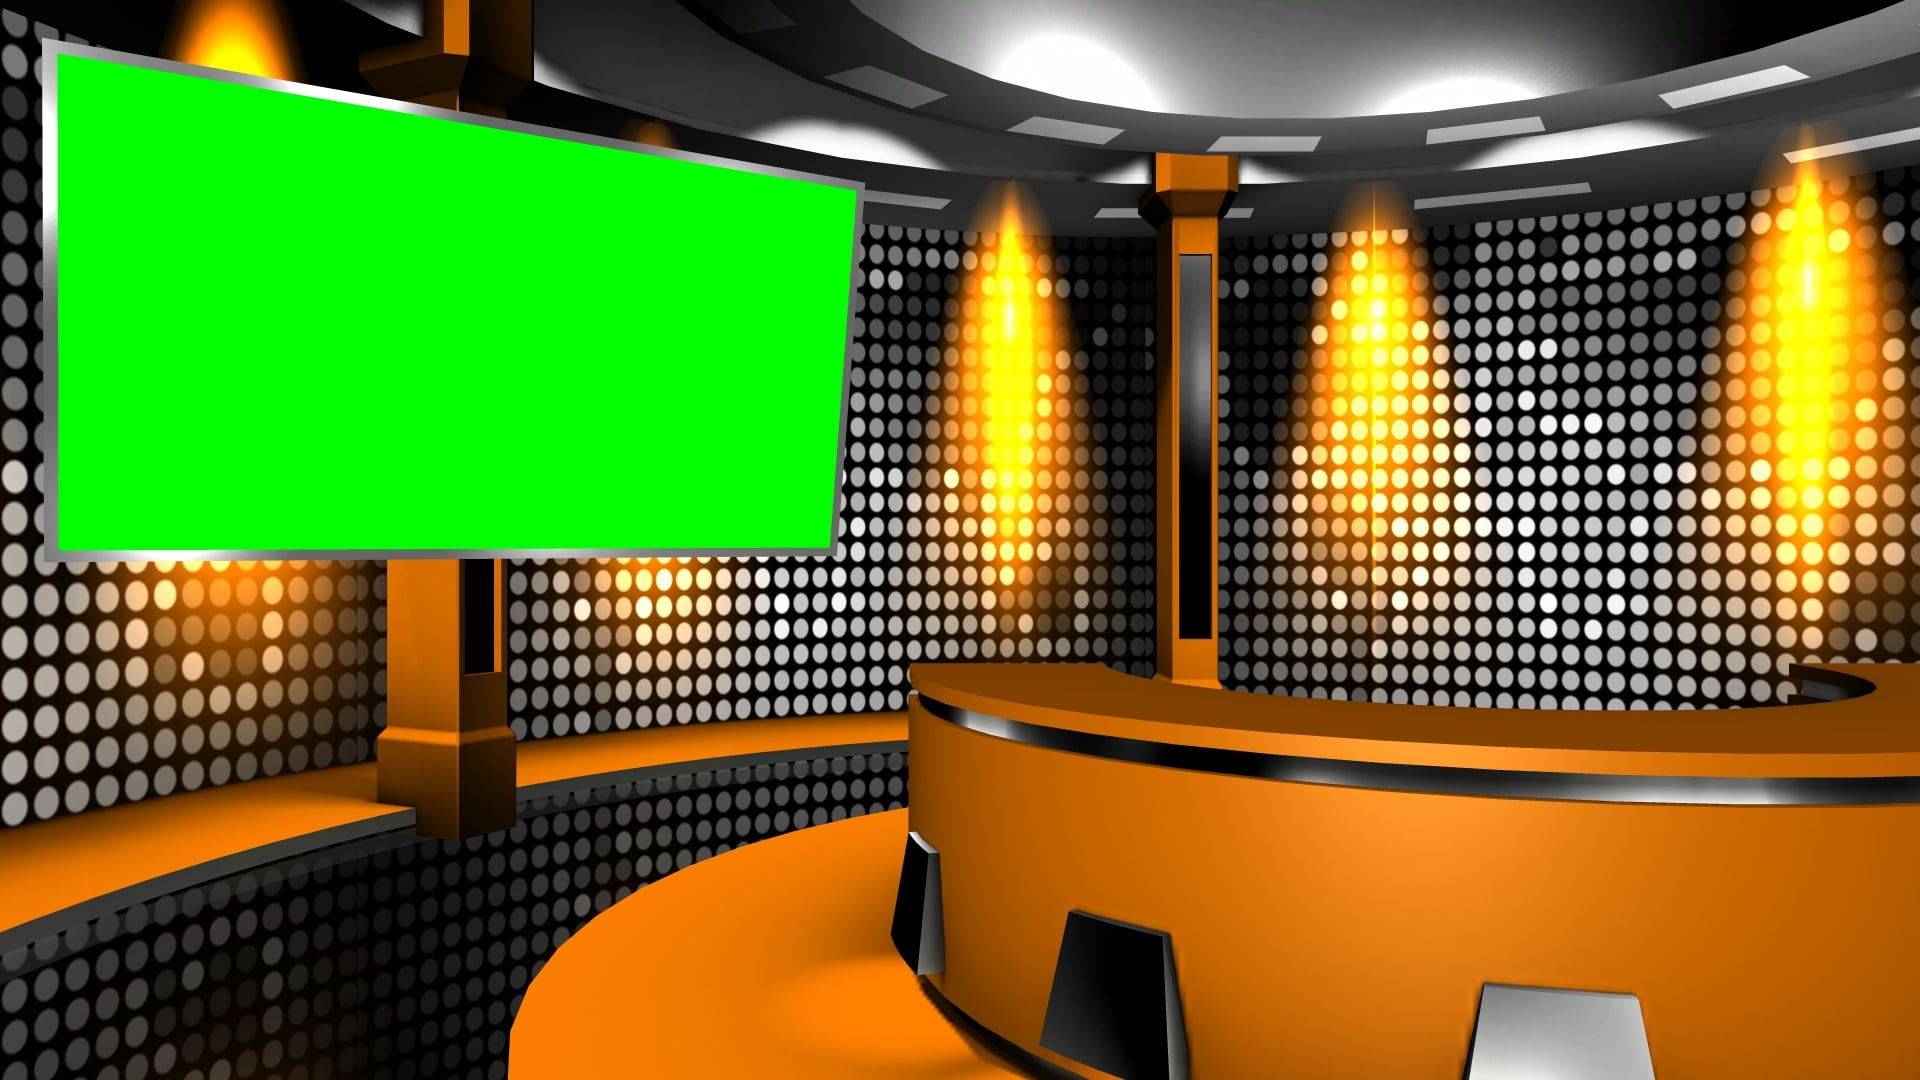 A Still Virtual Television Studio Background With Green Screen Free Video Footage